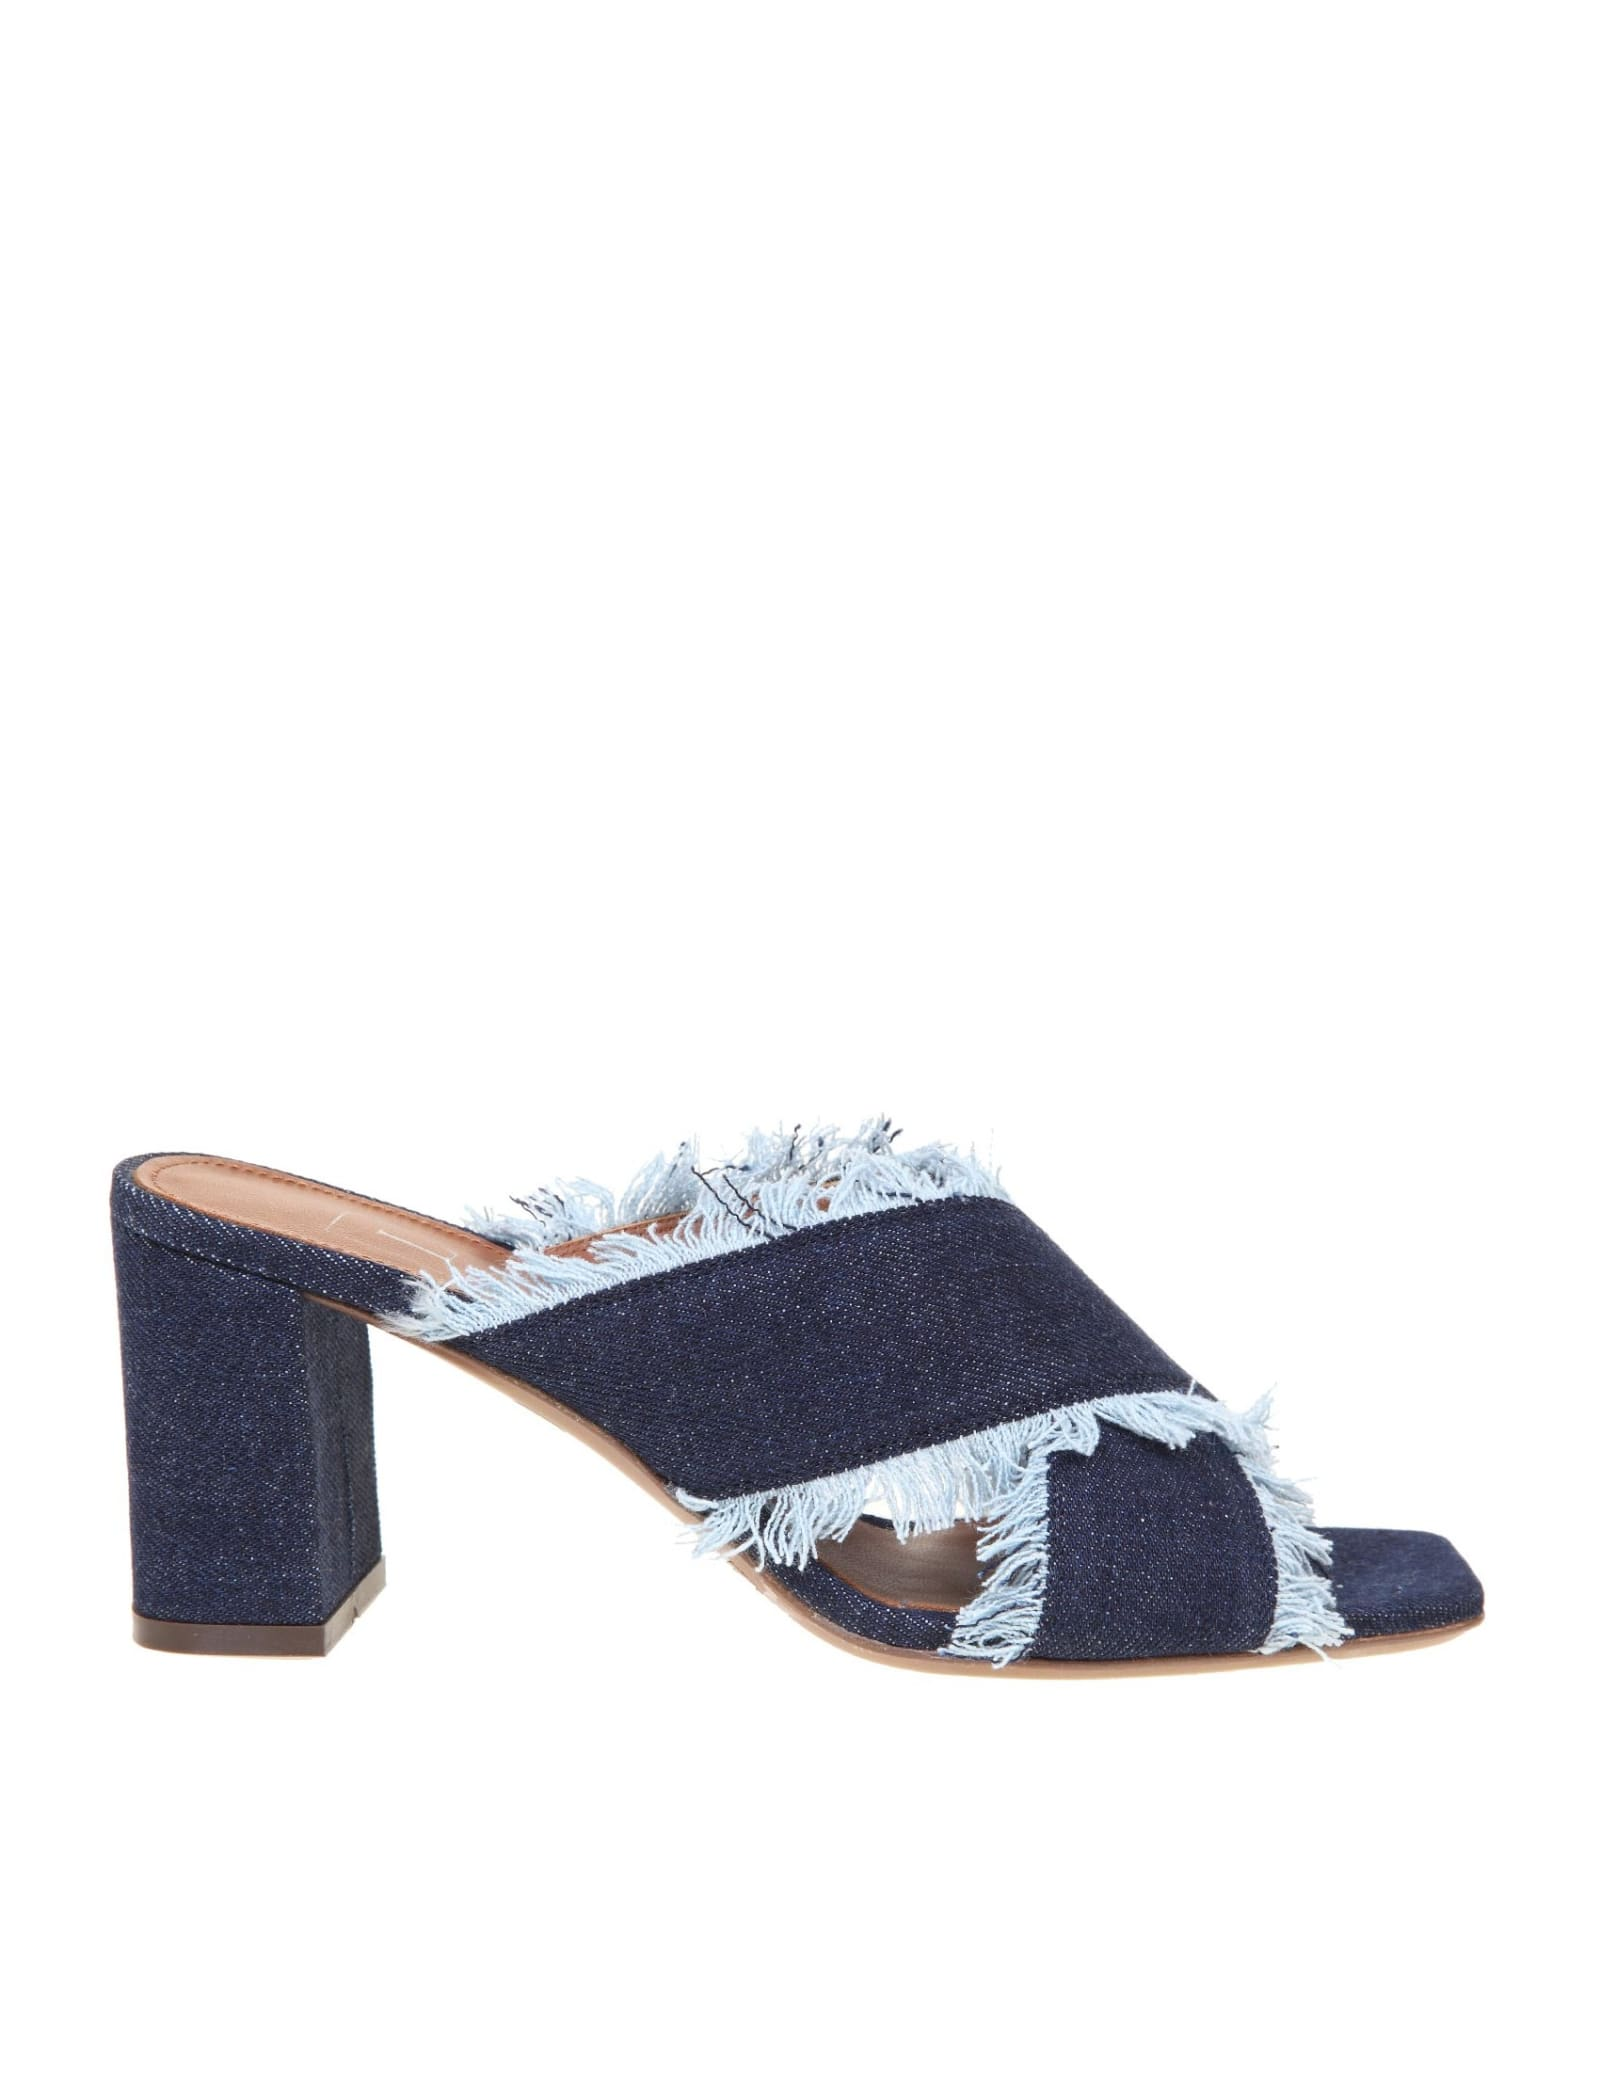 L'autre Chose SANDAL IN BLUE JEANS